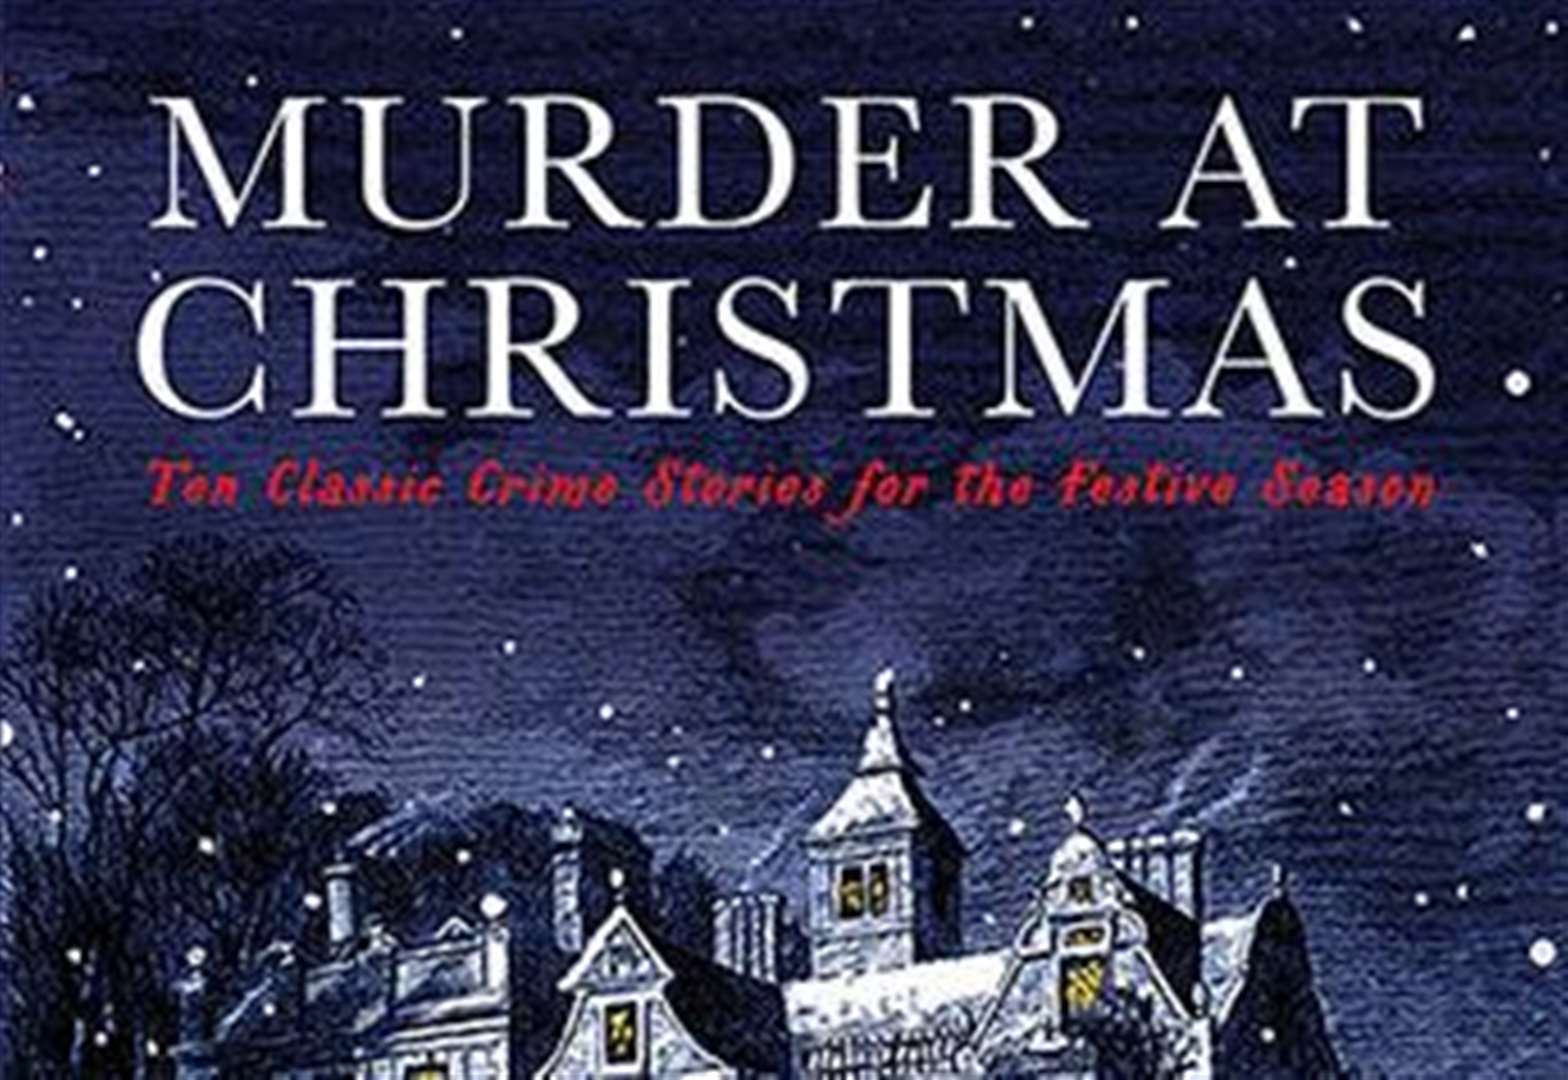 BOOK OF THE WEEK: Murder at Christmas - Ten Classic Crime Stories for the Festive Season